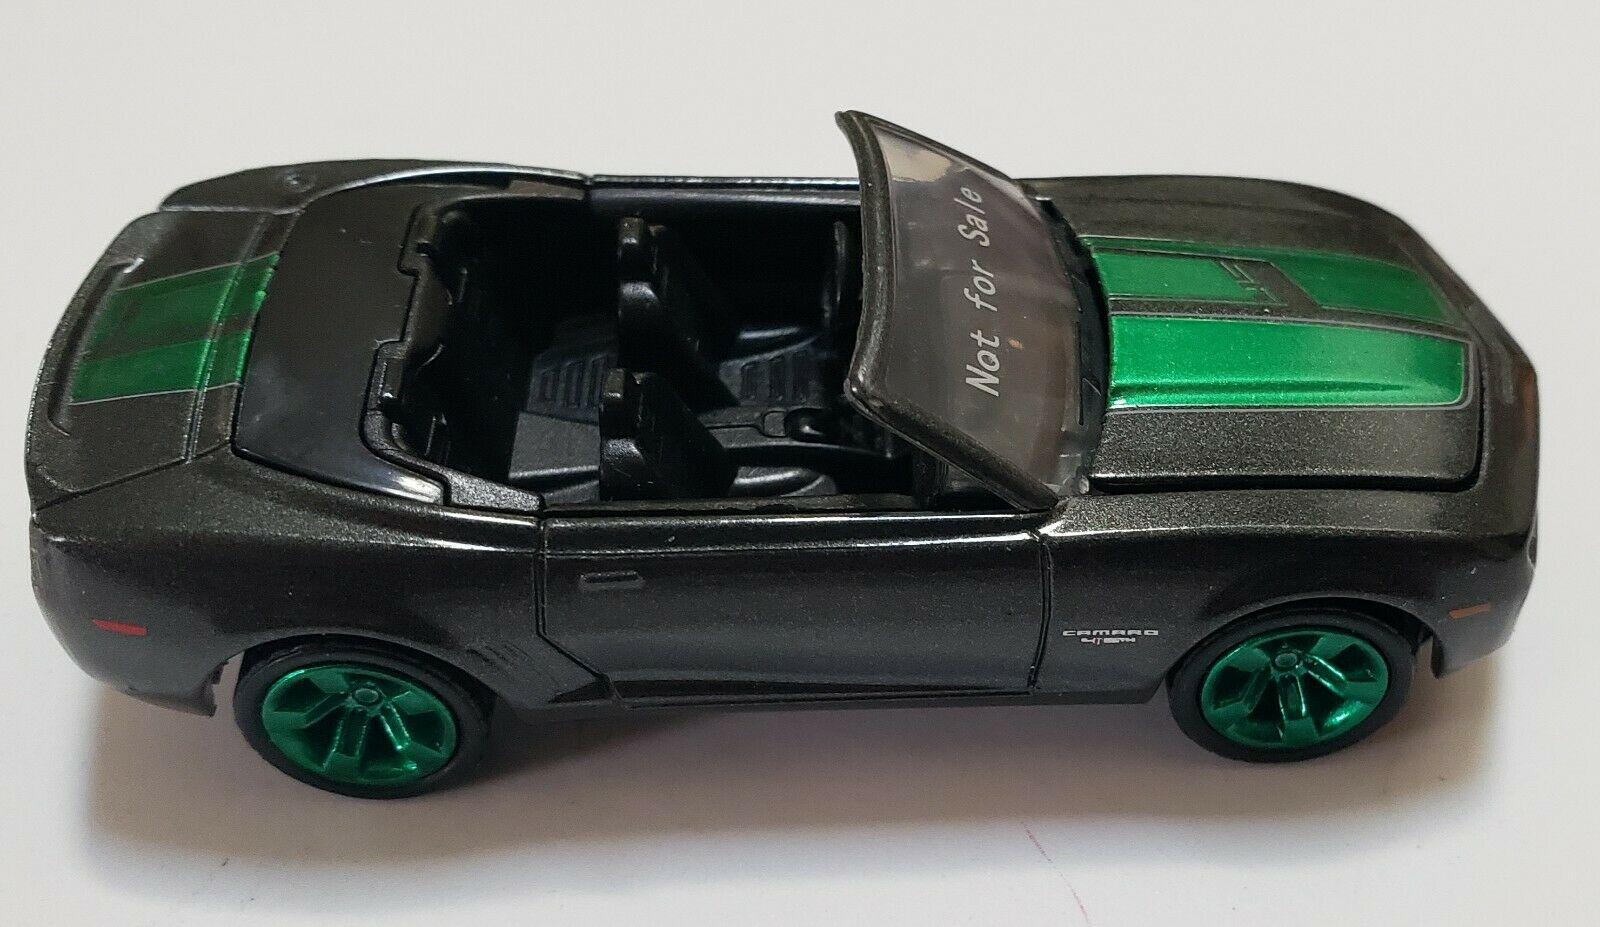 vertlight 13051 préproduction DECO 45th anniversary Camaro one of a kind Chase